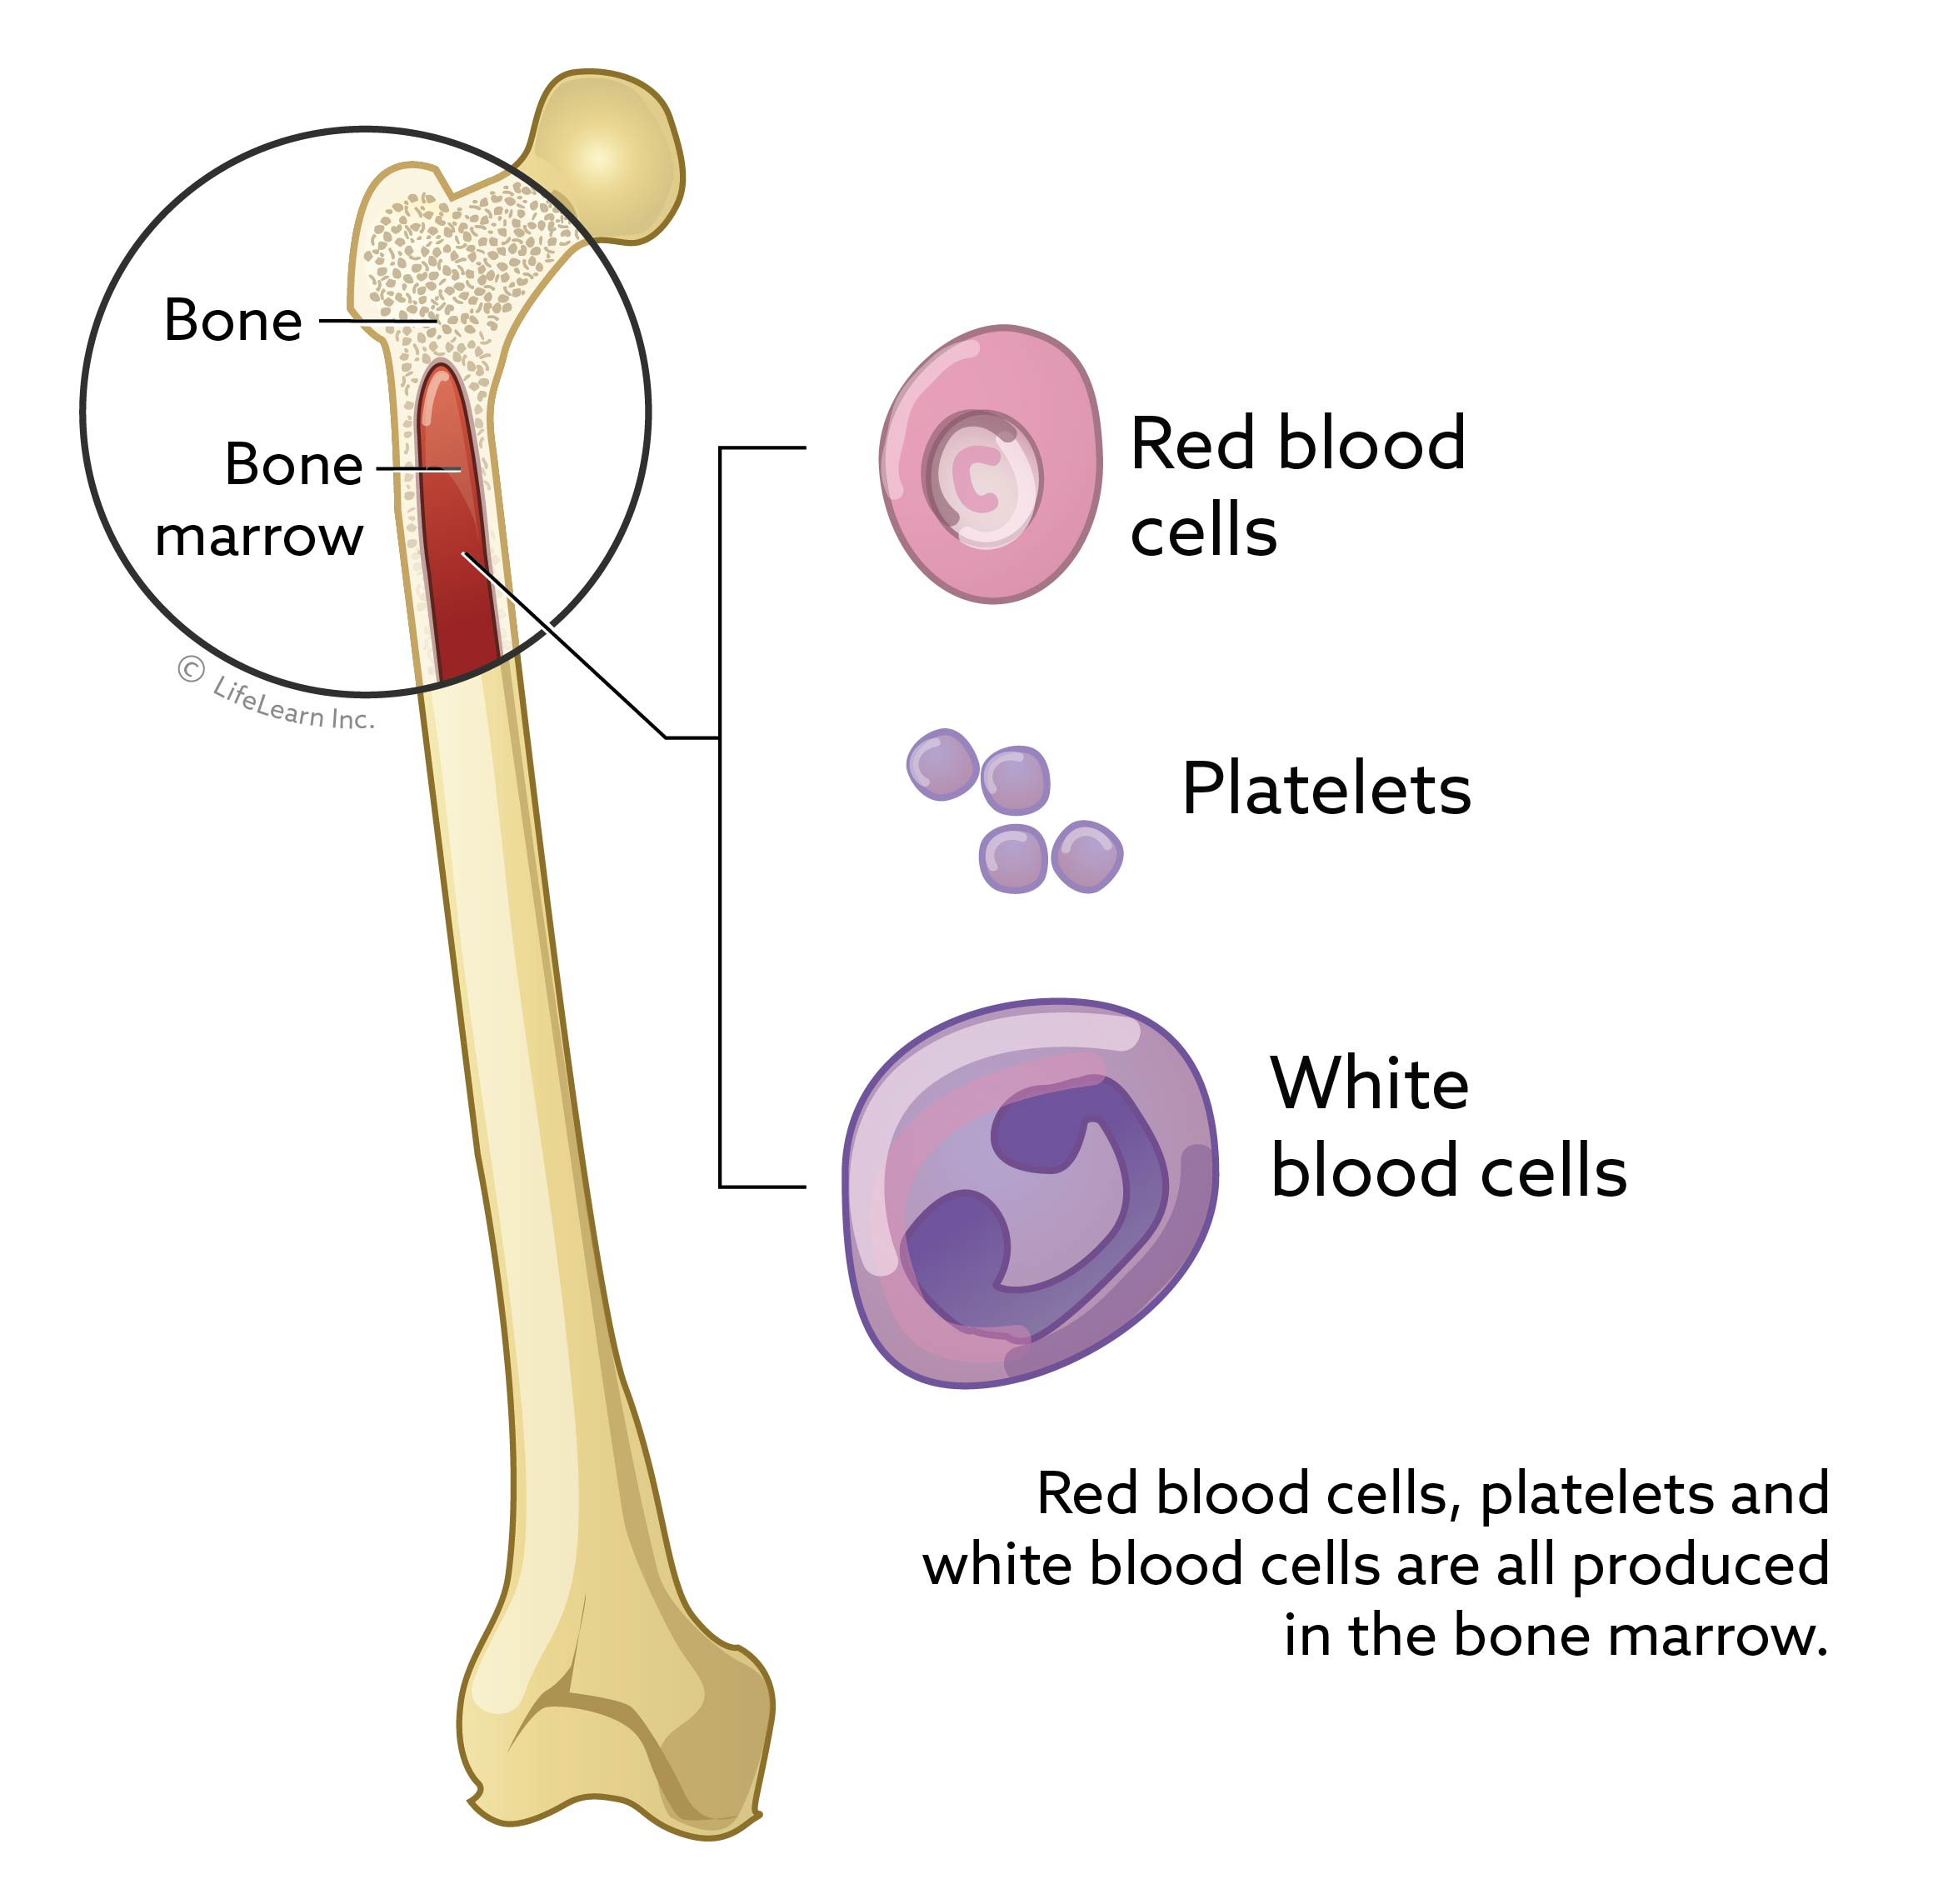 blood_cells_from_bone_2018-01-1